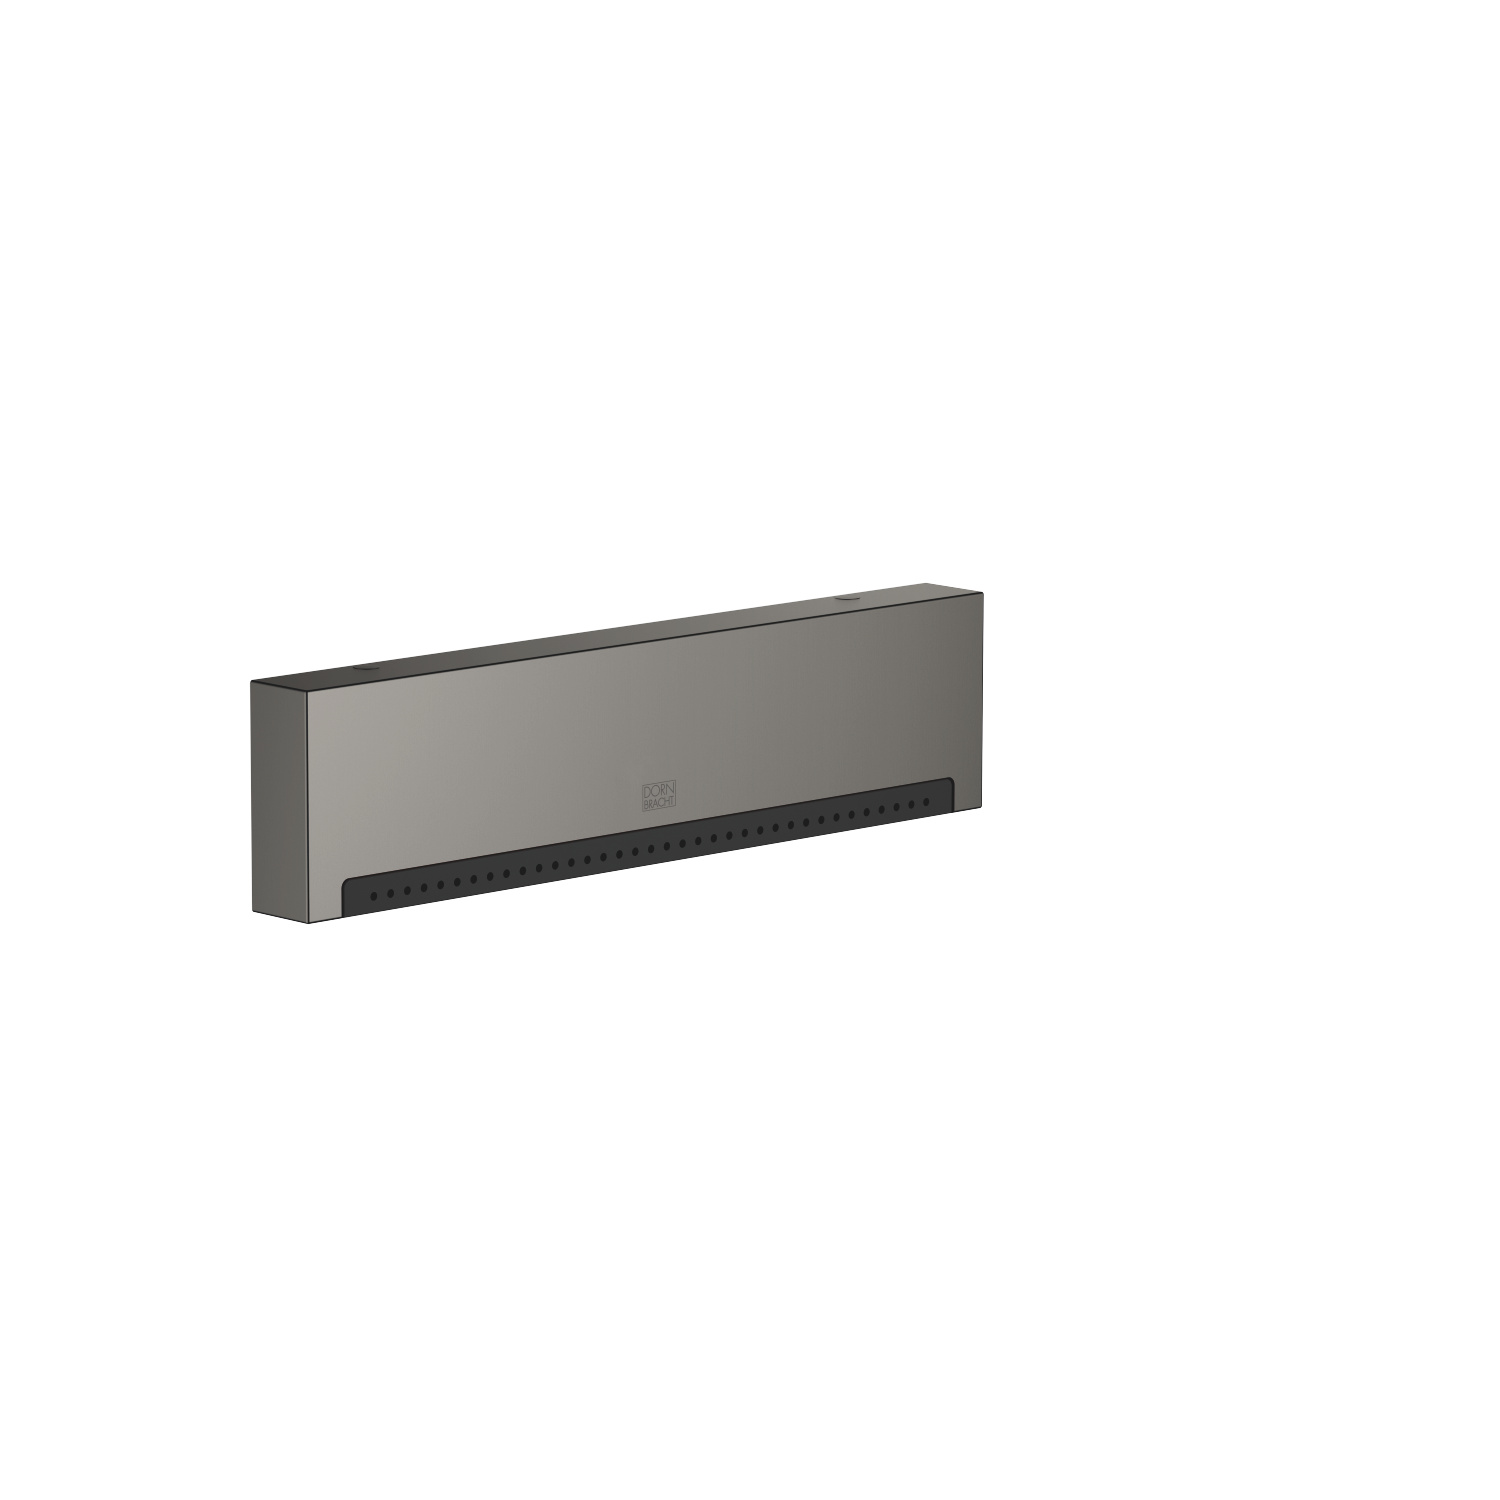 WATER FALL Cascade spout with PEARLSTREAM for wall-mounted installation - Dark Platinum matte